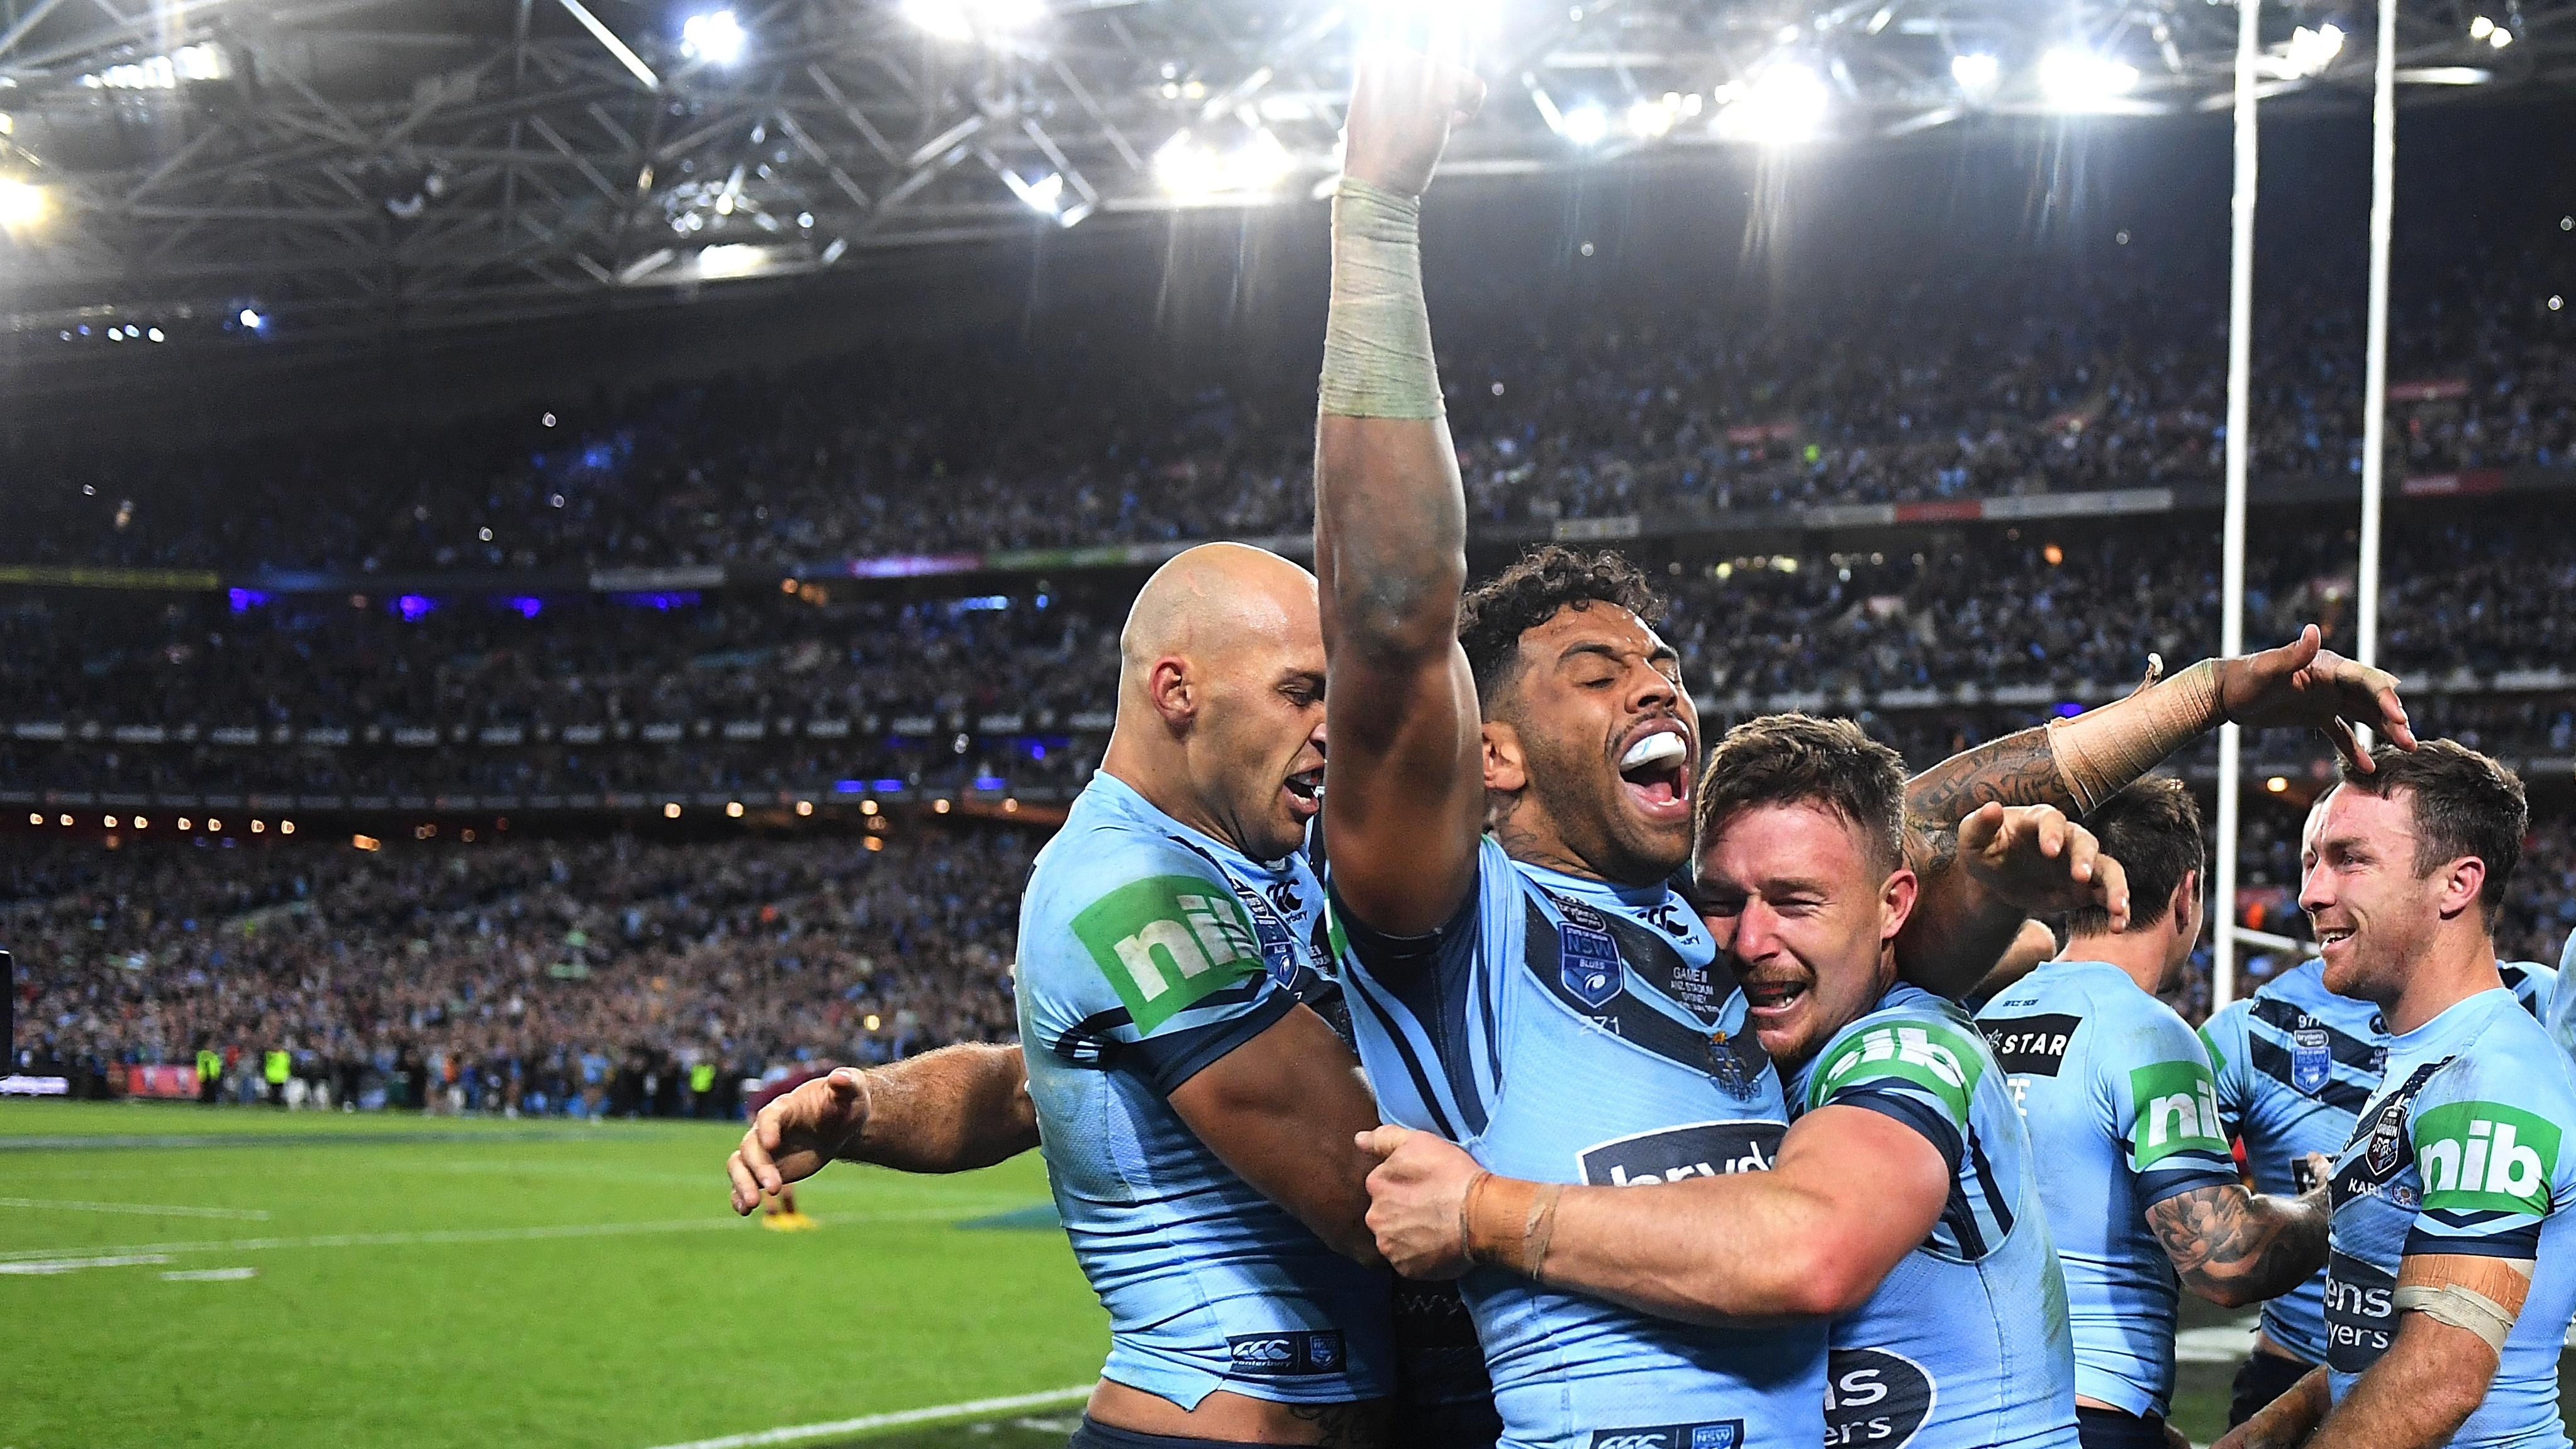 State of Origin Game III Highlights Video: NSW v QLD 2019